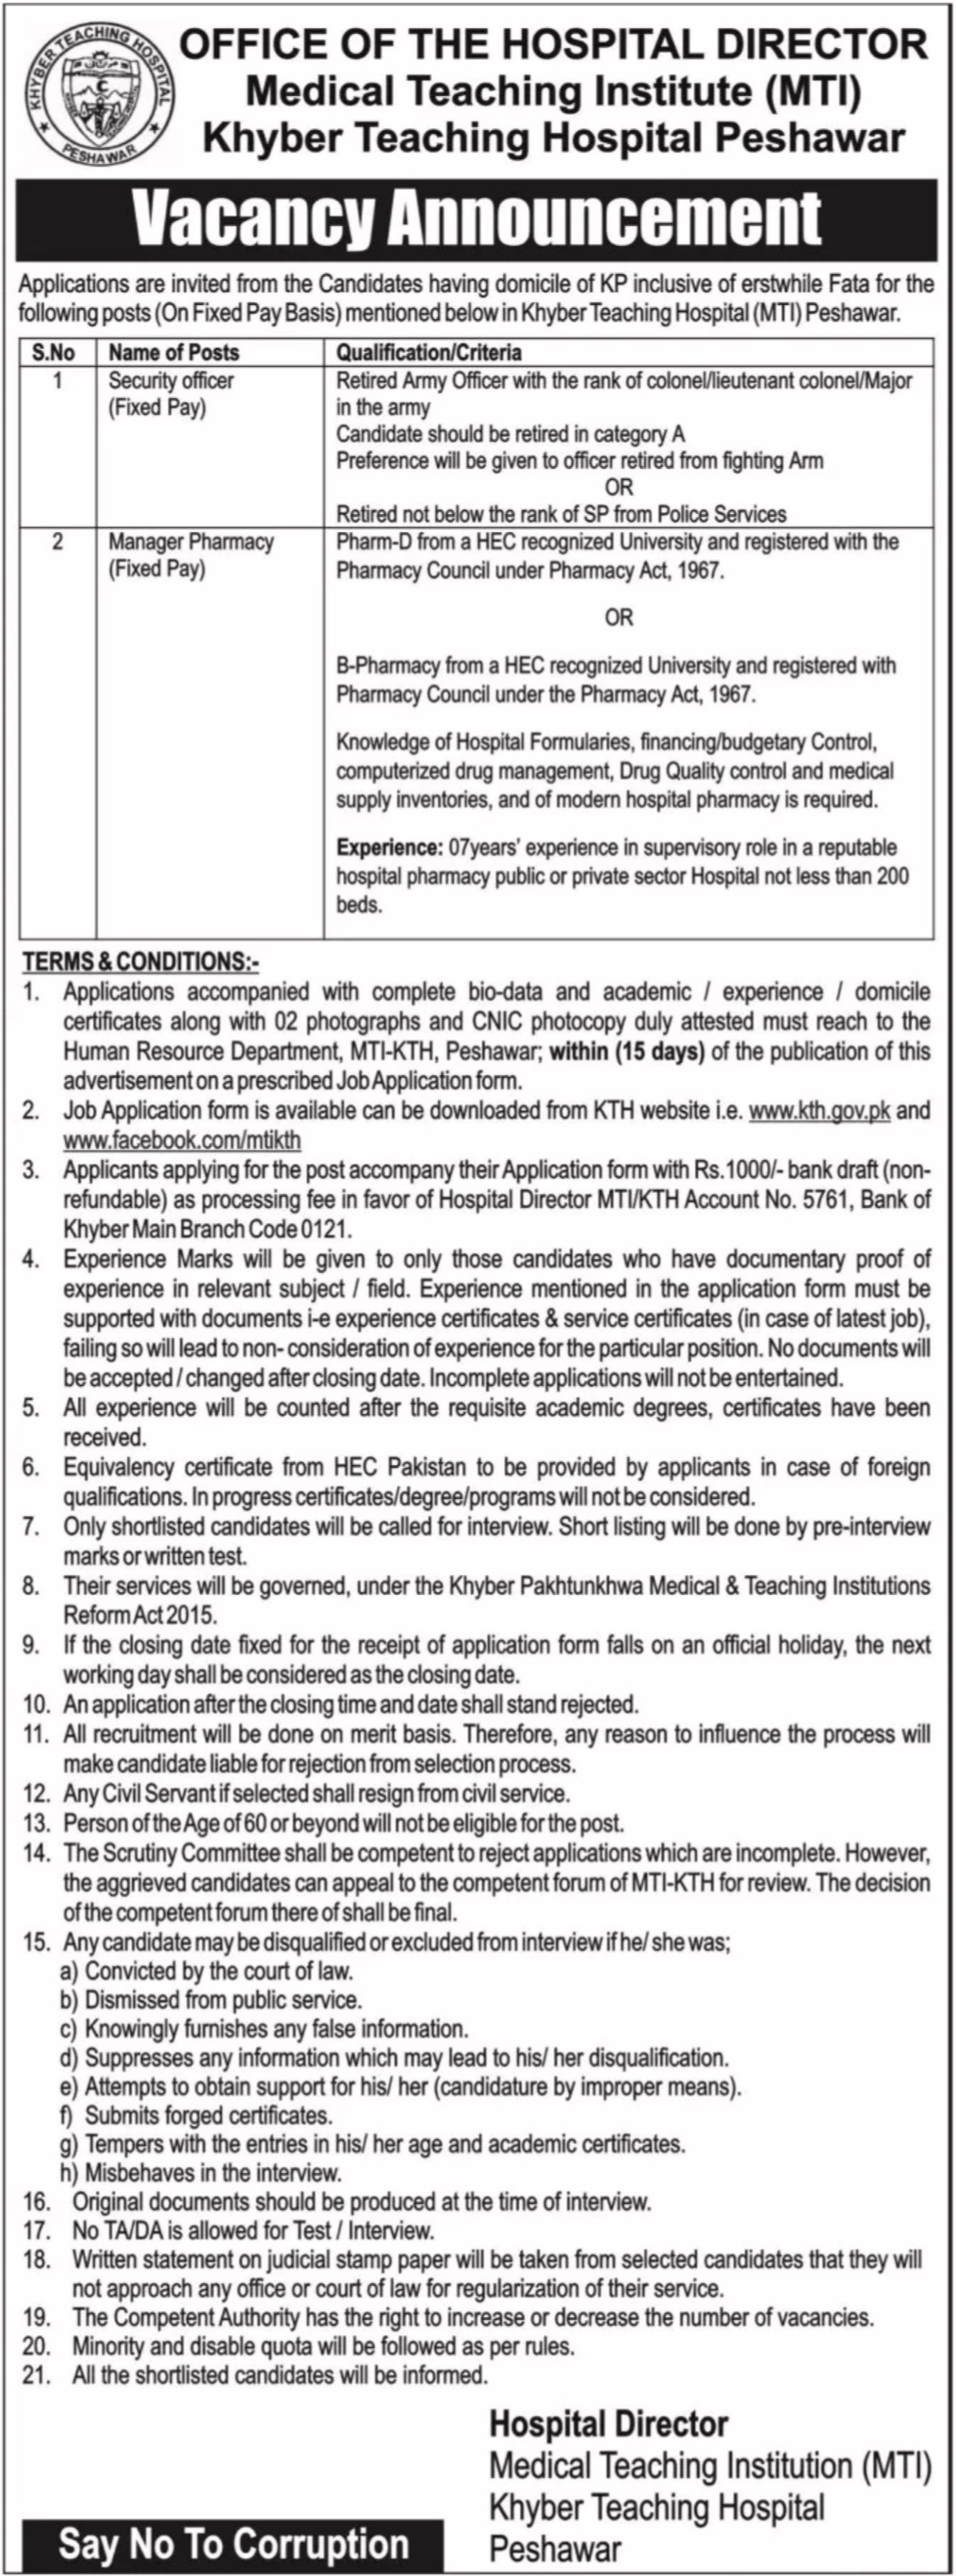 MTI Khyber Teaching Hospital Peshawar Jobs 2019 KTH KPK Latest